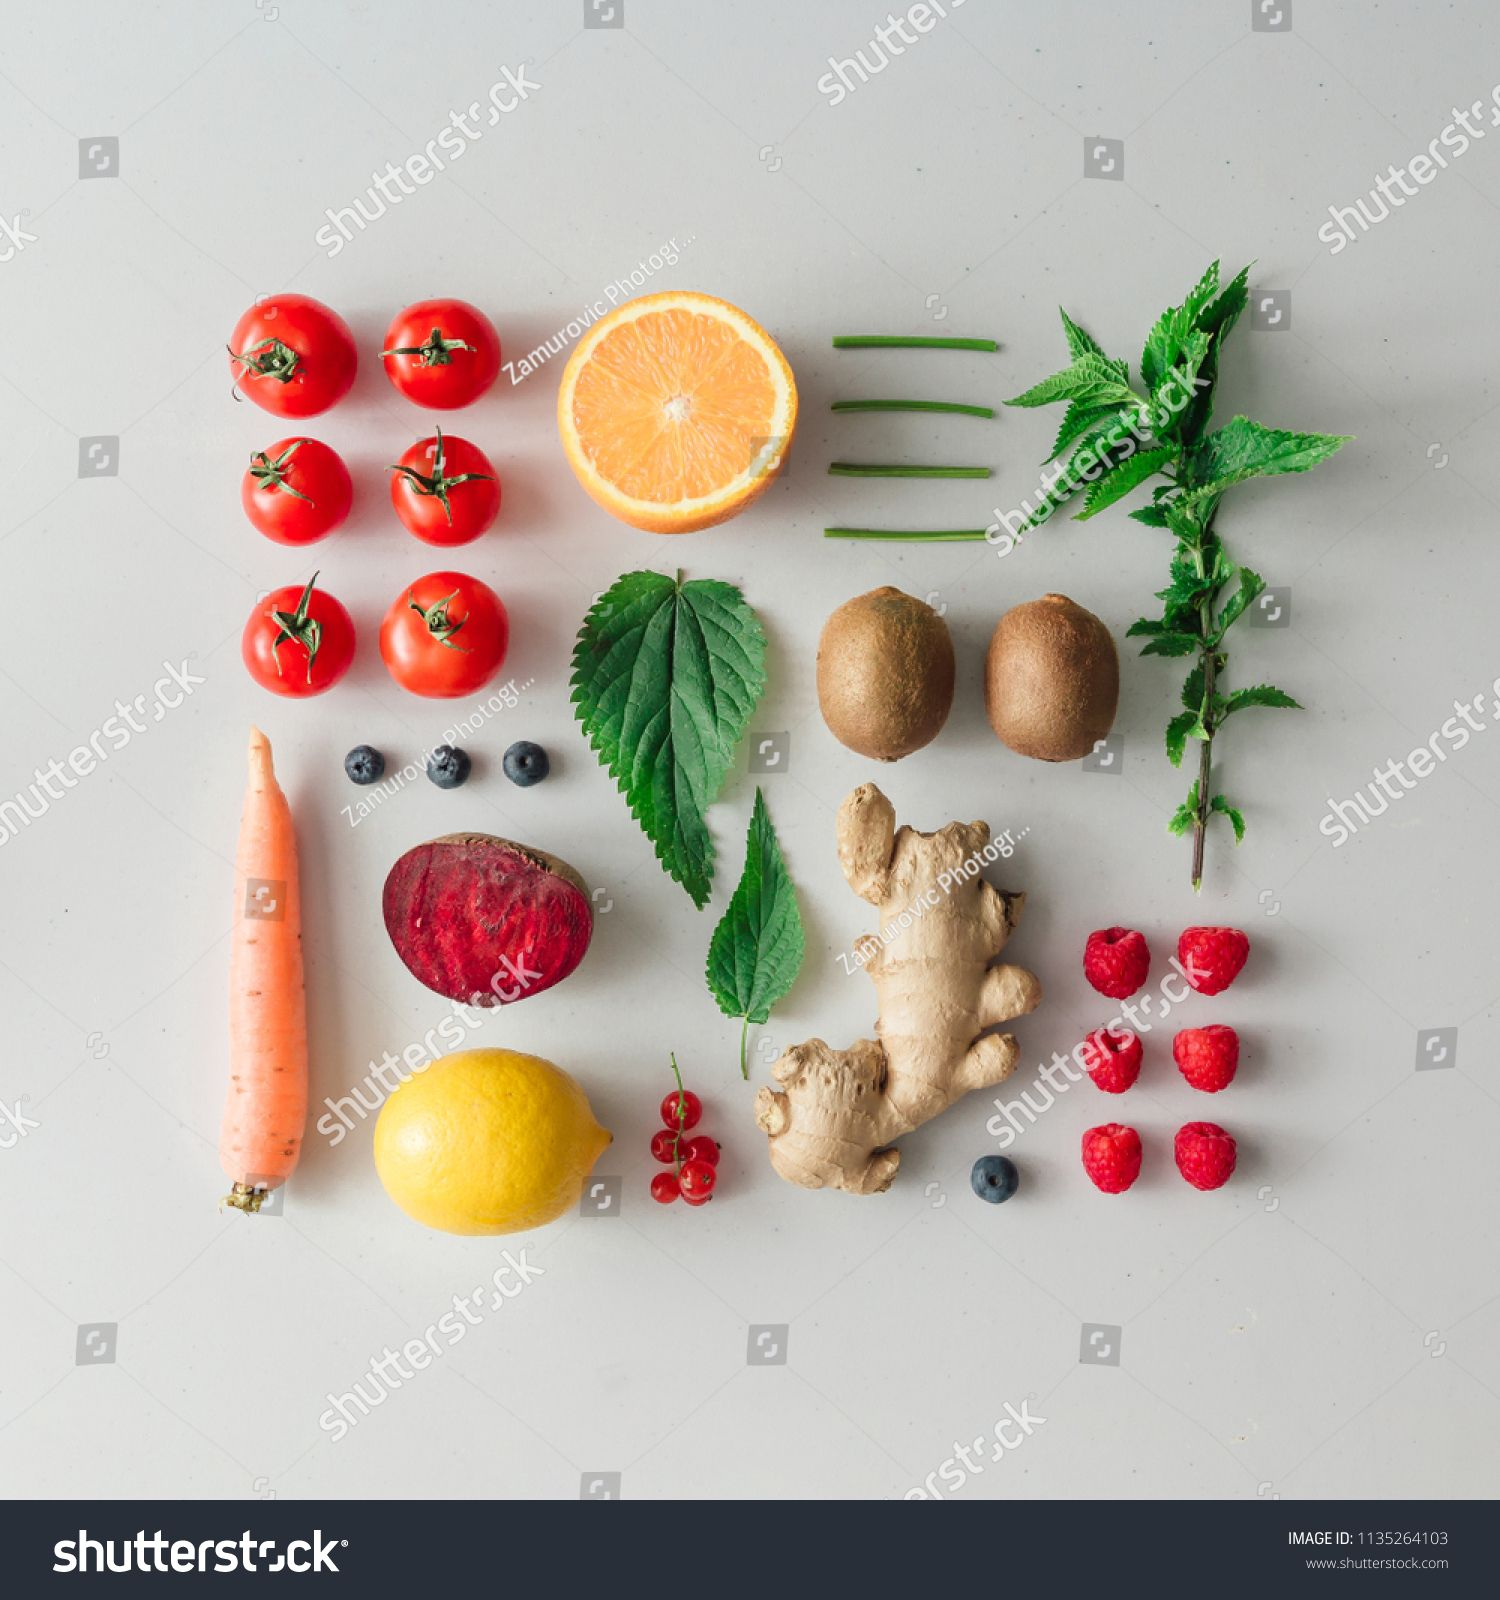 Creative Neatly Arranged Food Layout With Fruits Vegetables And Leaves On Bright Background Minimal Healthy Food Concept F Food Concept Food Healthy Recipes